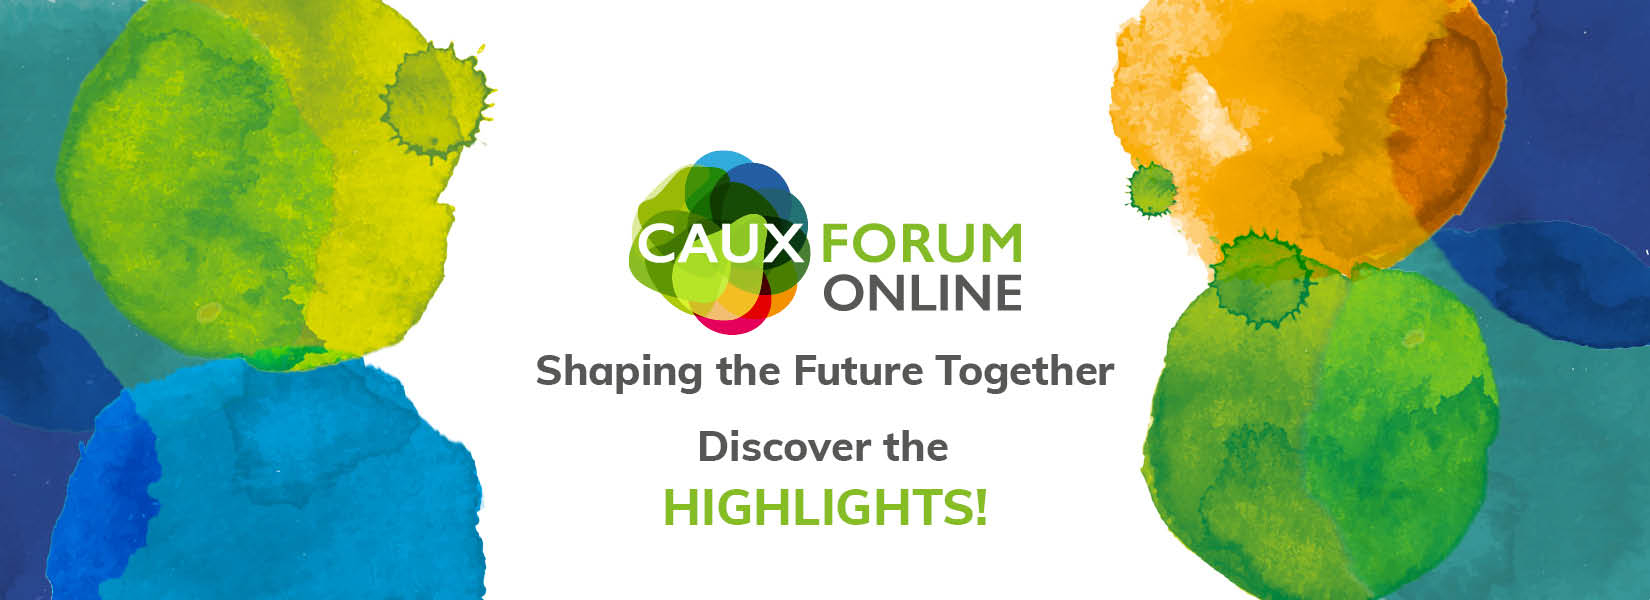 Caux Forum Discover the highlights 2020 EN